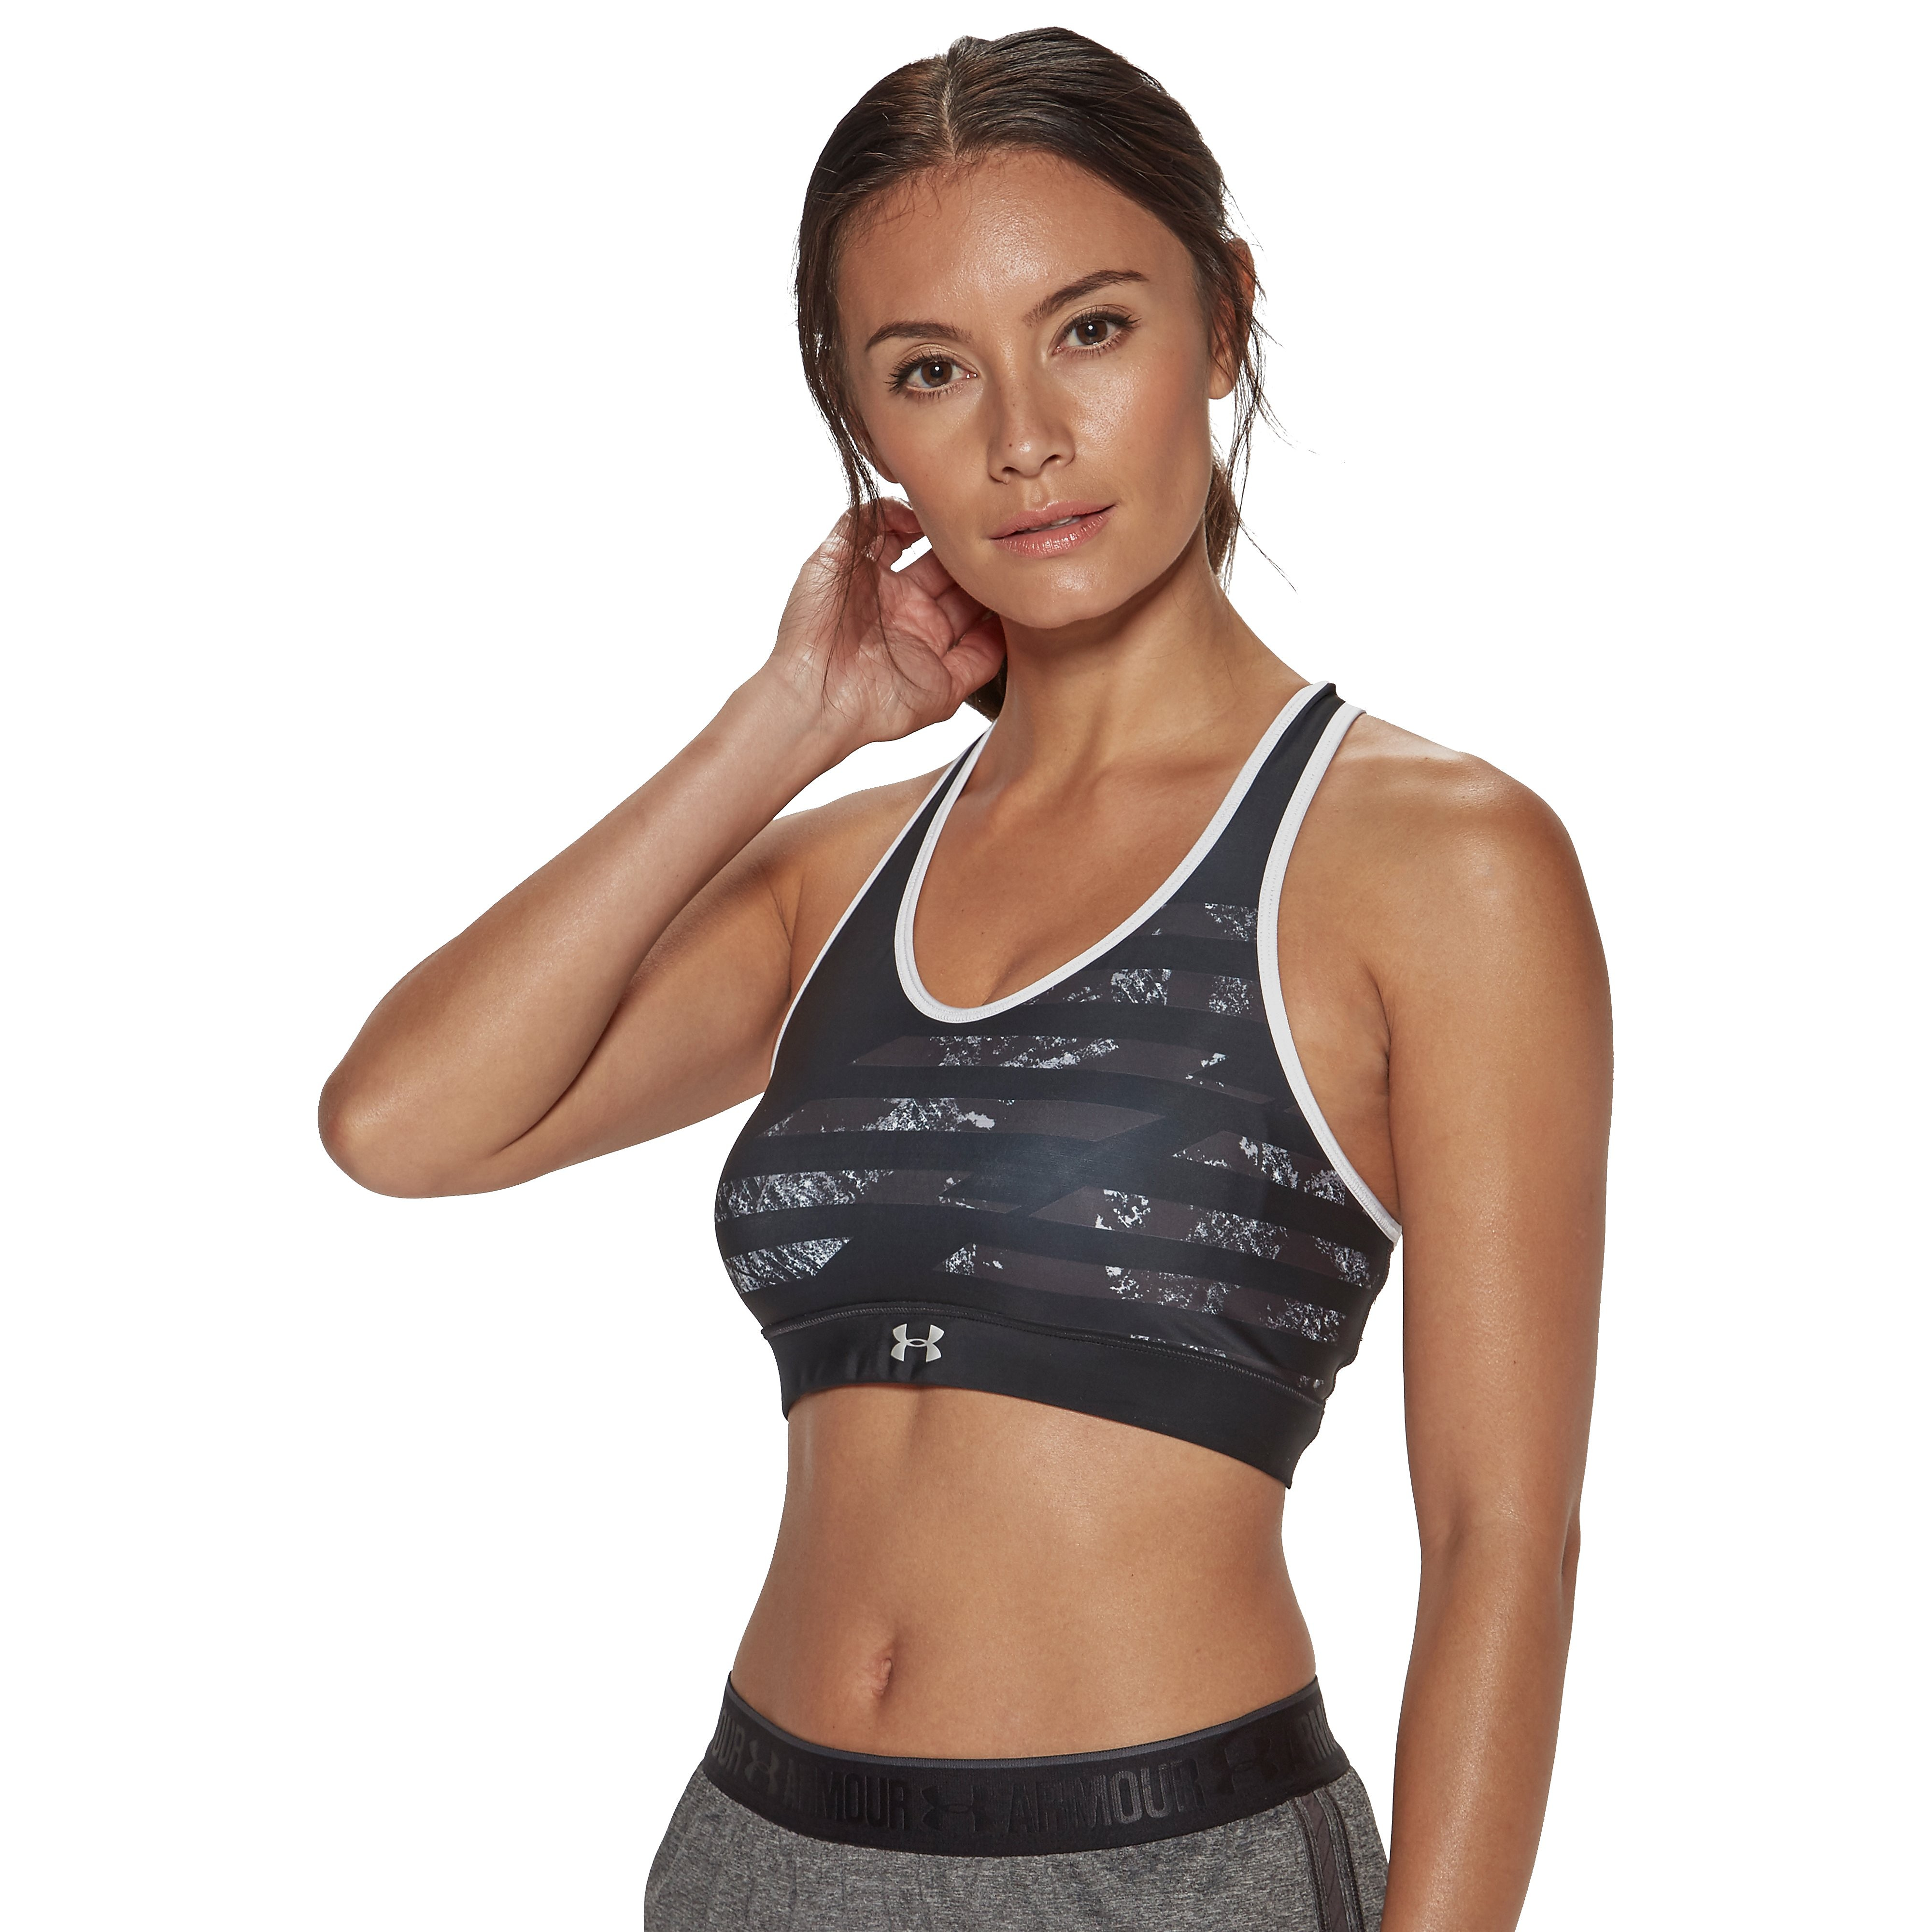 Under Armour Women's Mid Reversible Sports Bra